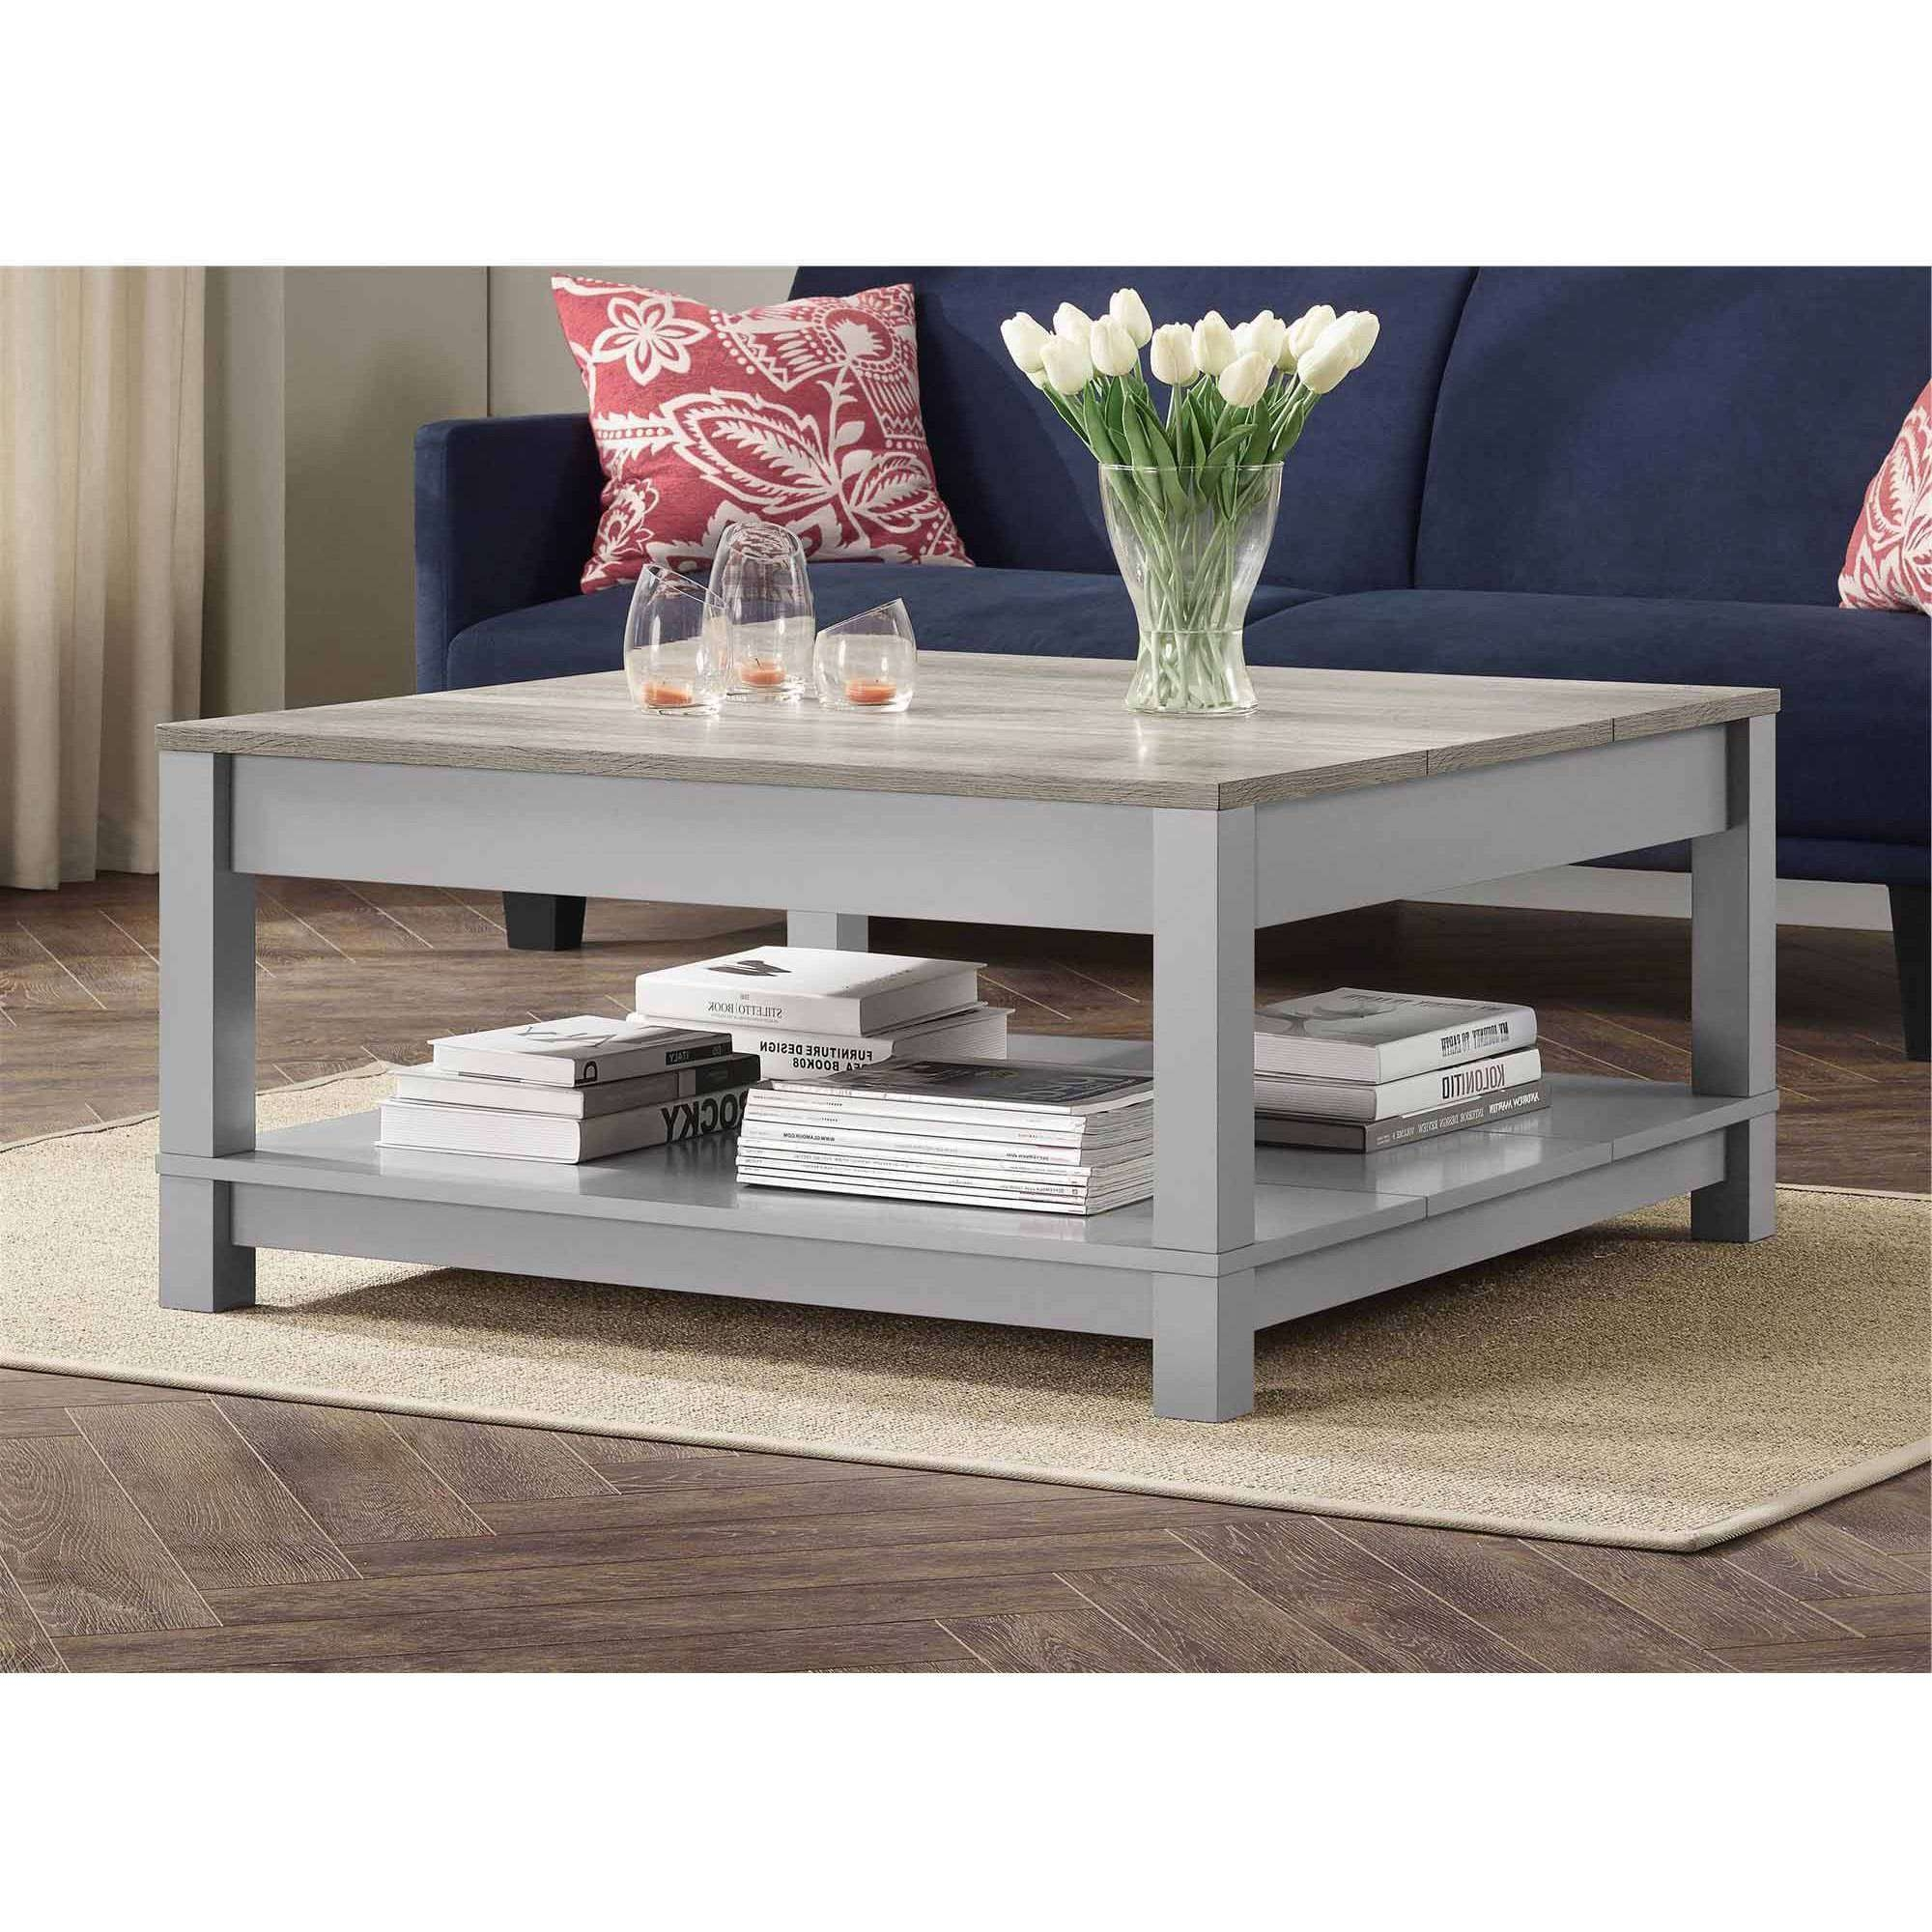 Better Homes And Gardens Langley Bay Coffee Table, Multiple Colors With Well Known Space Coffee Tables (View 2 of 20)